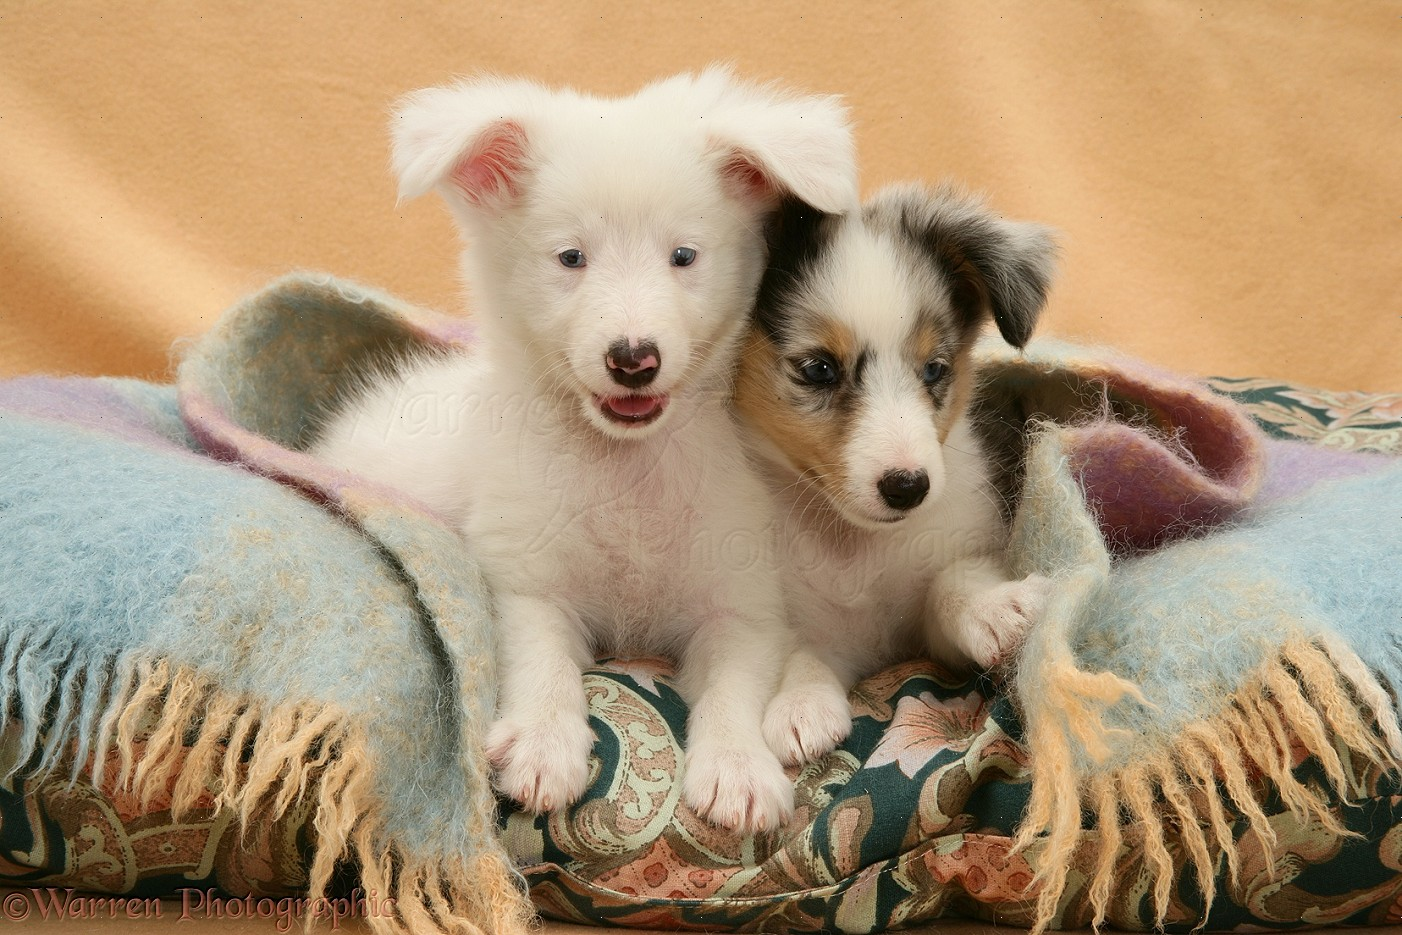 Shetland Sheepdog pups photo - WP14612